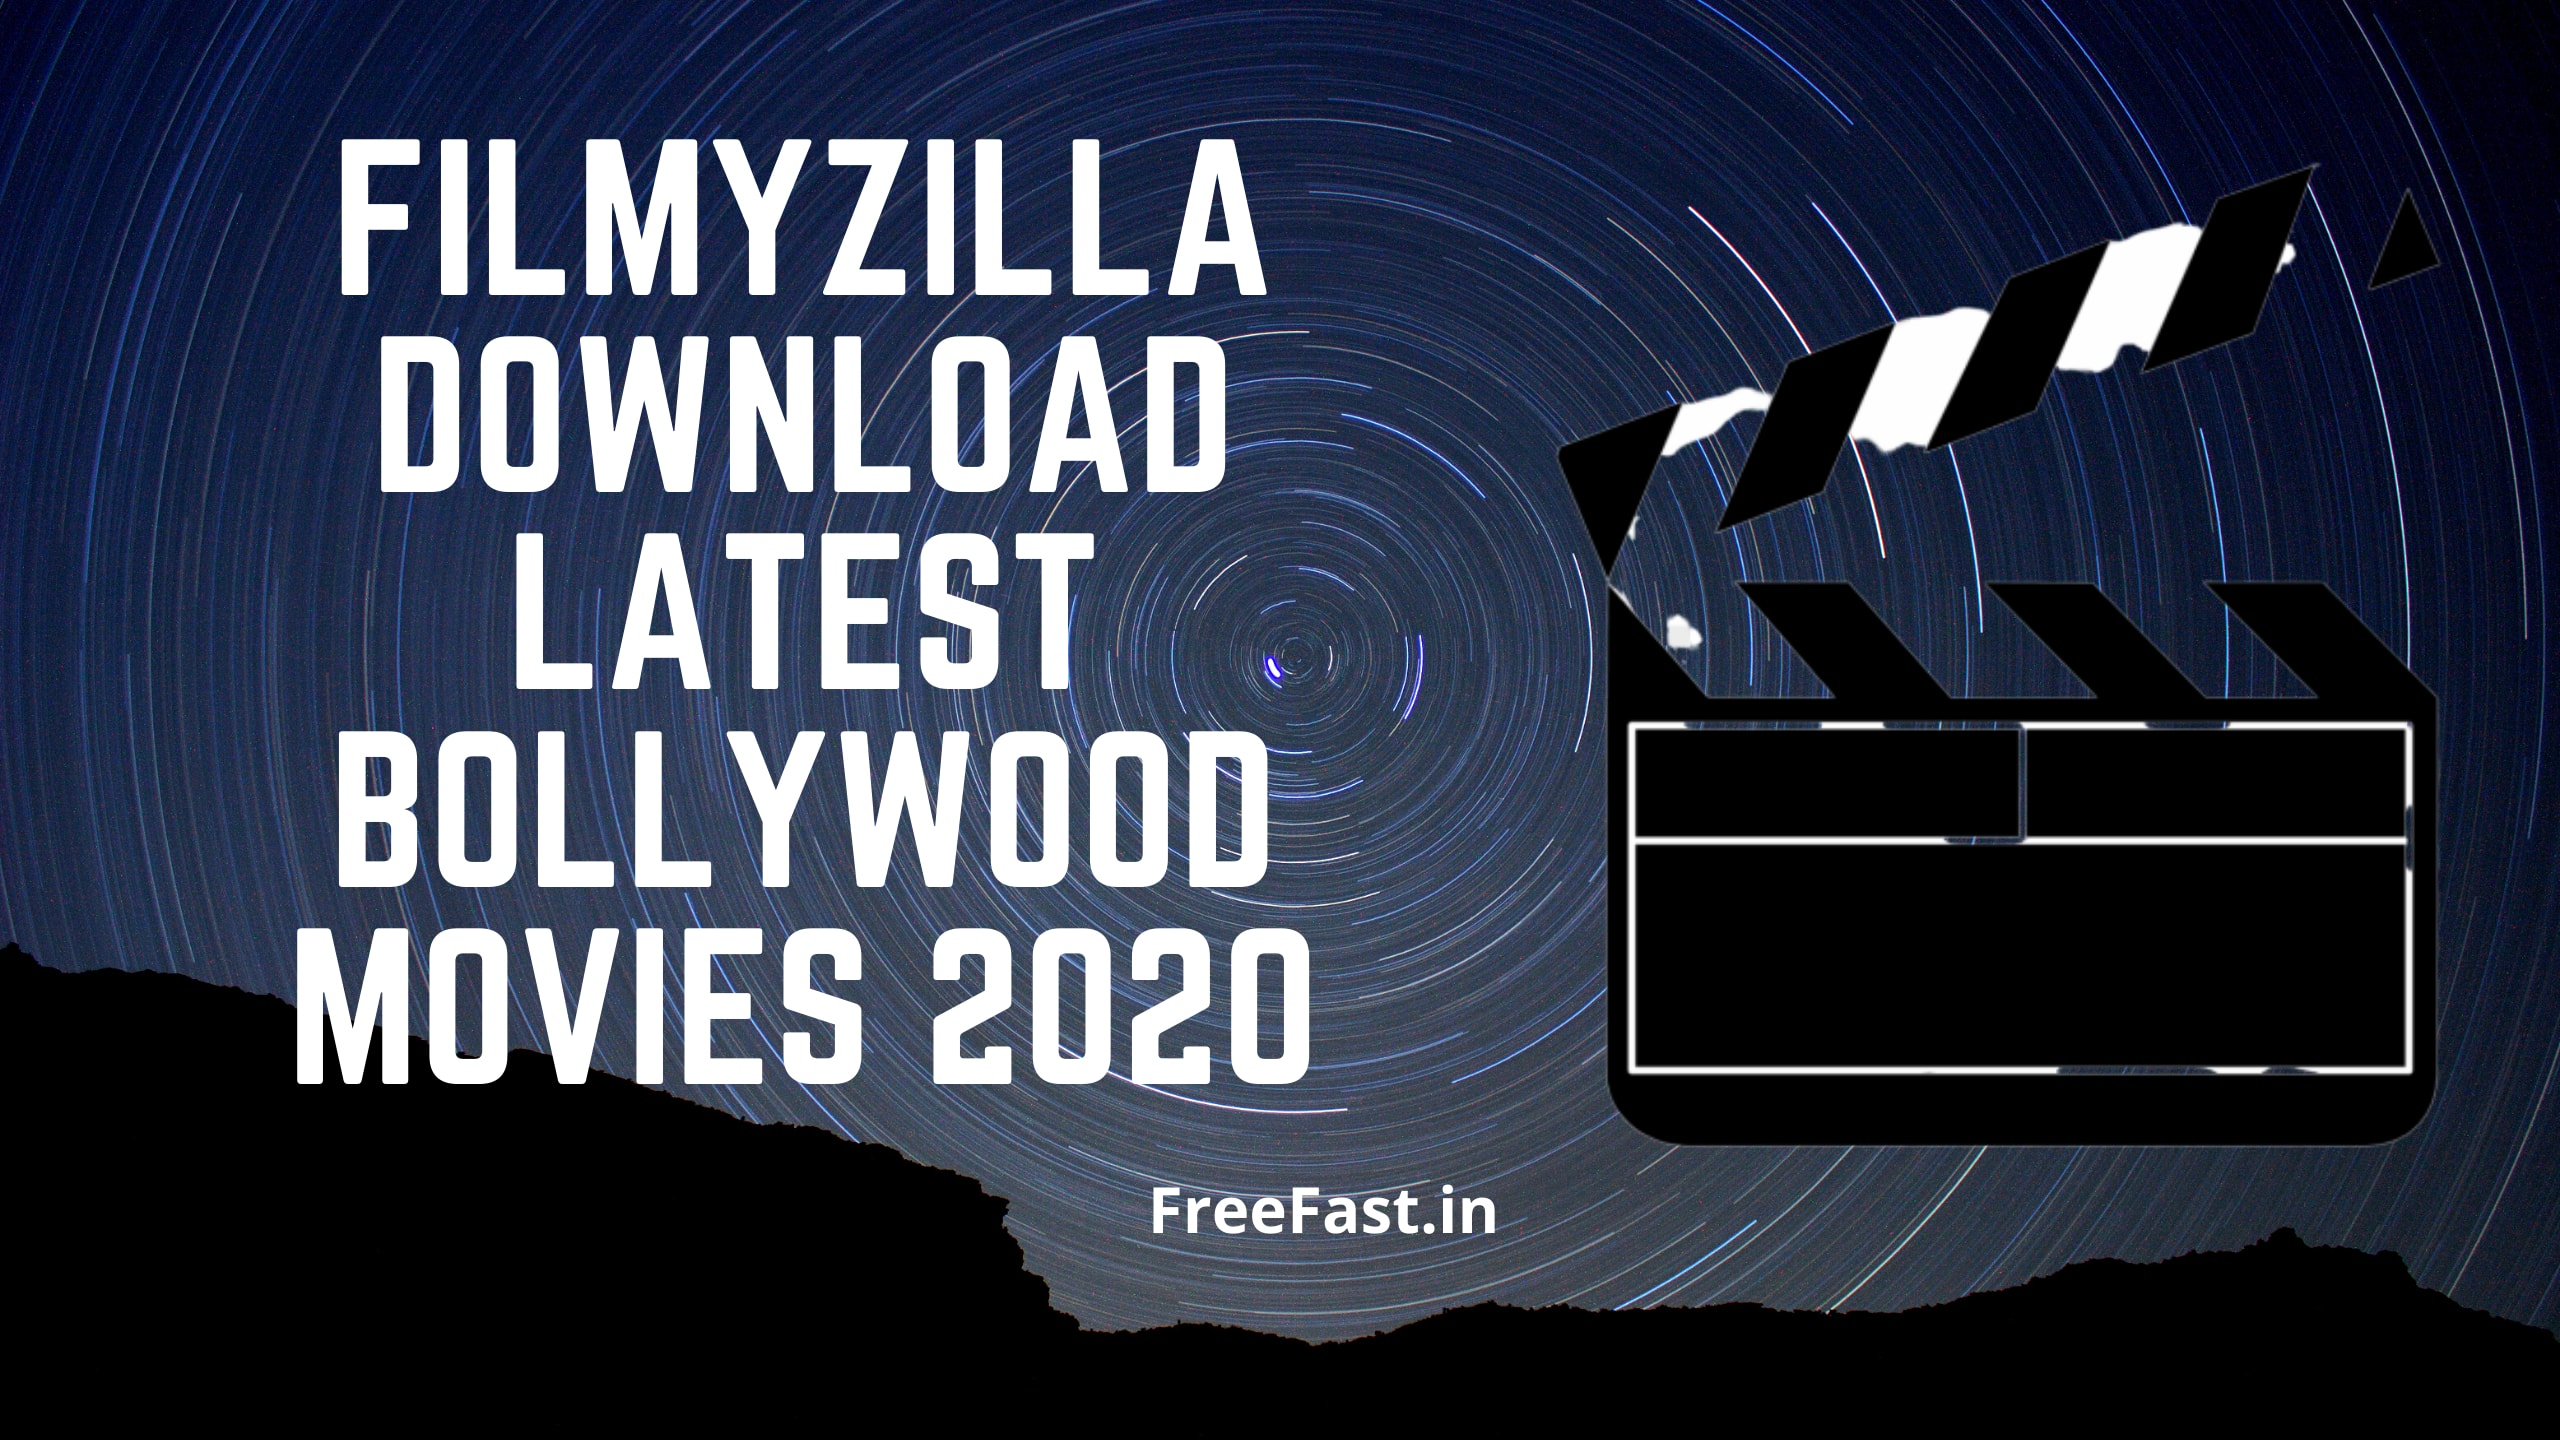 Filmyzilla Download Latest Bollywood Movies 2020